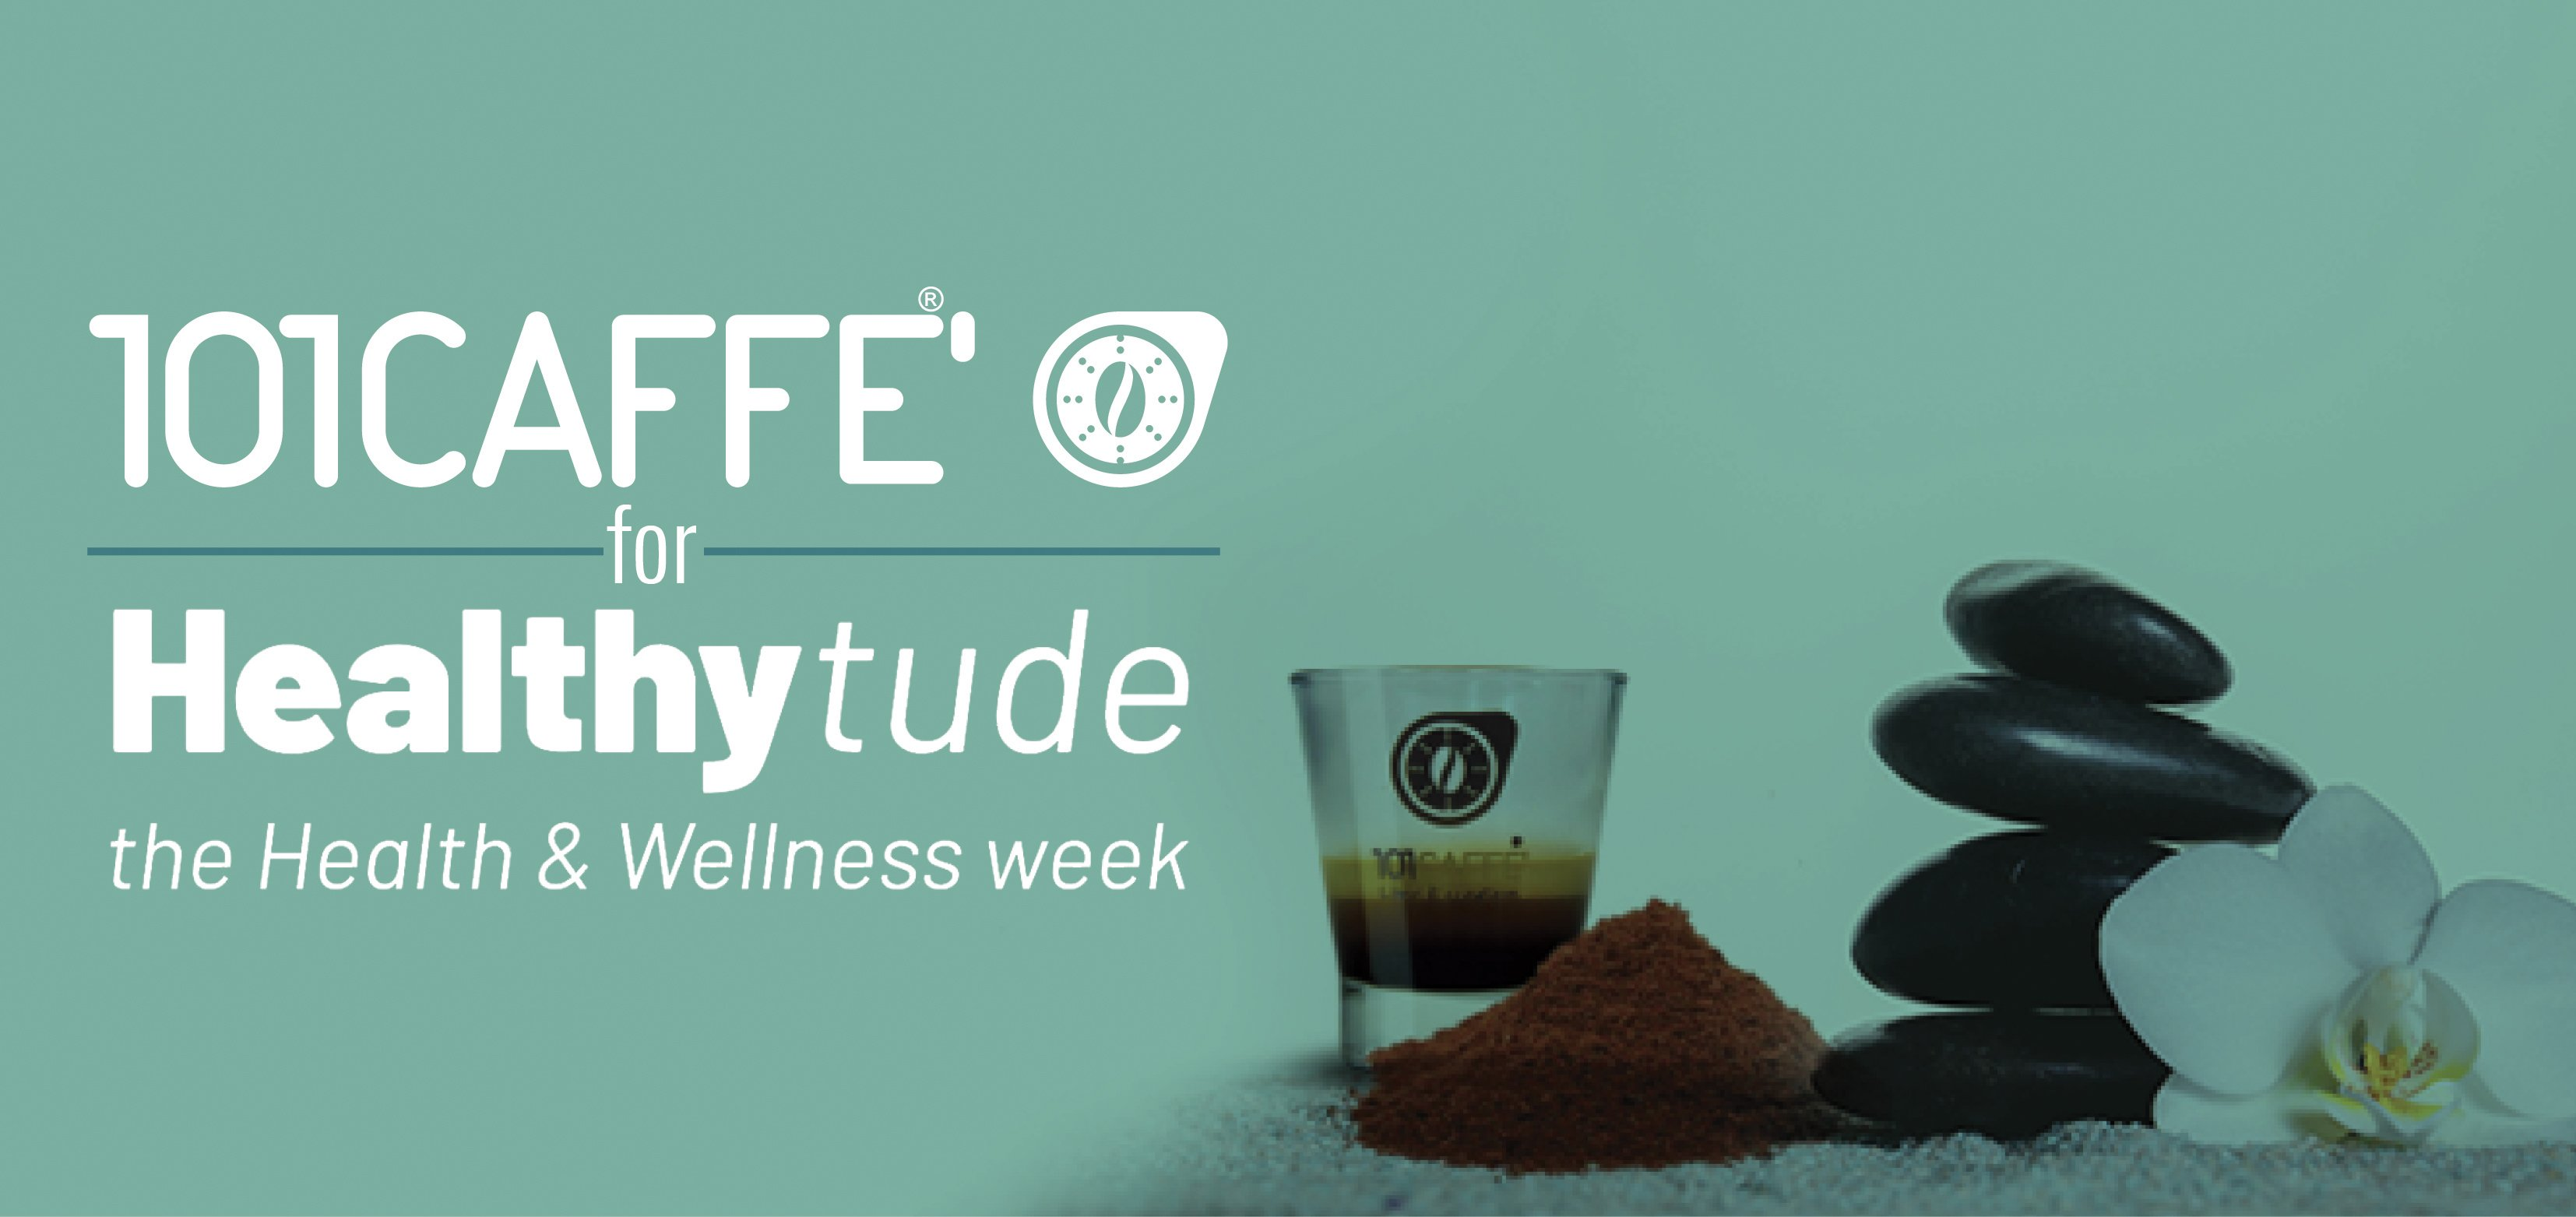 101CAFFE' for Healthytude: the event celebrating well-being